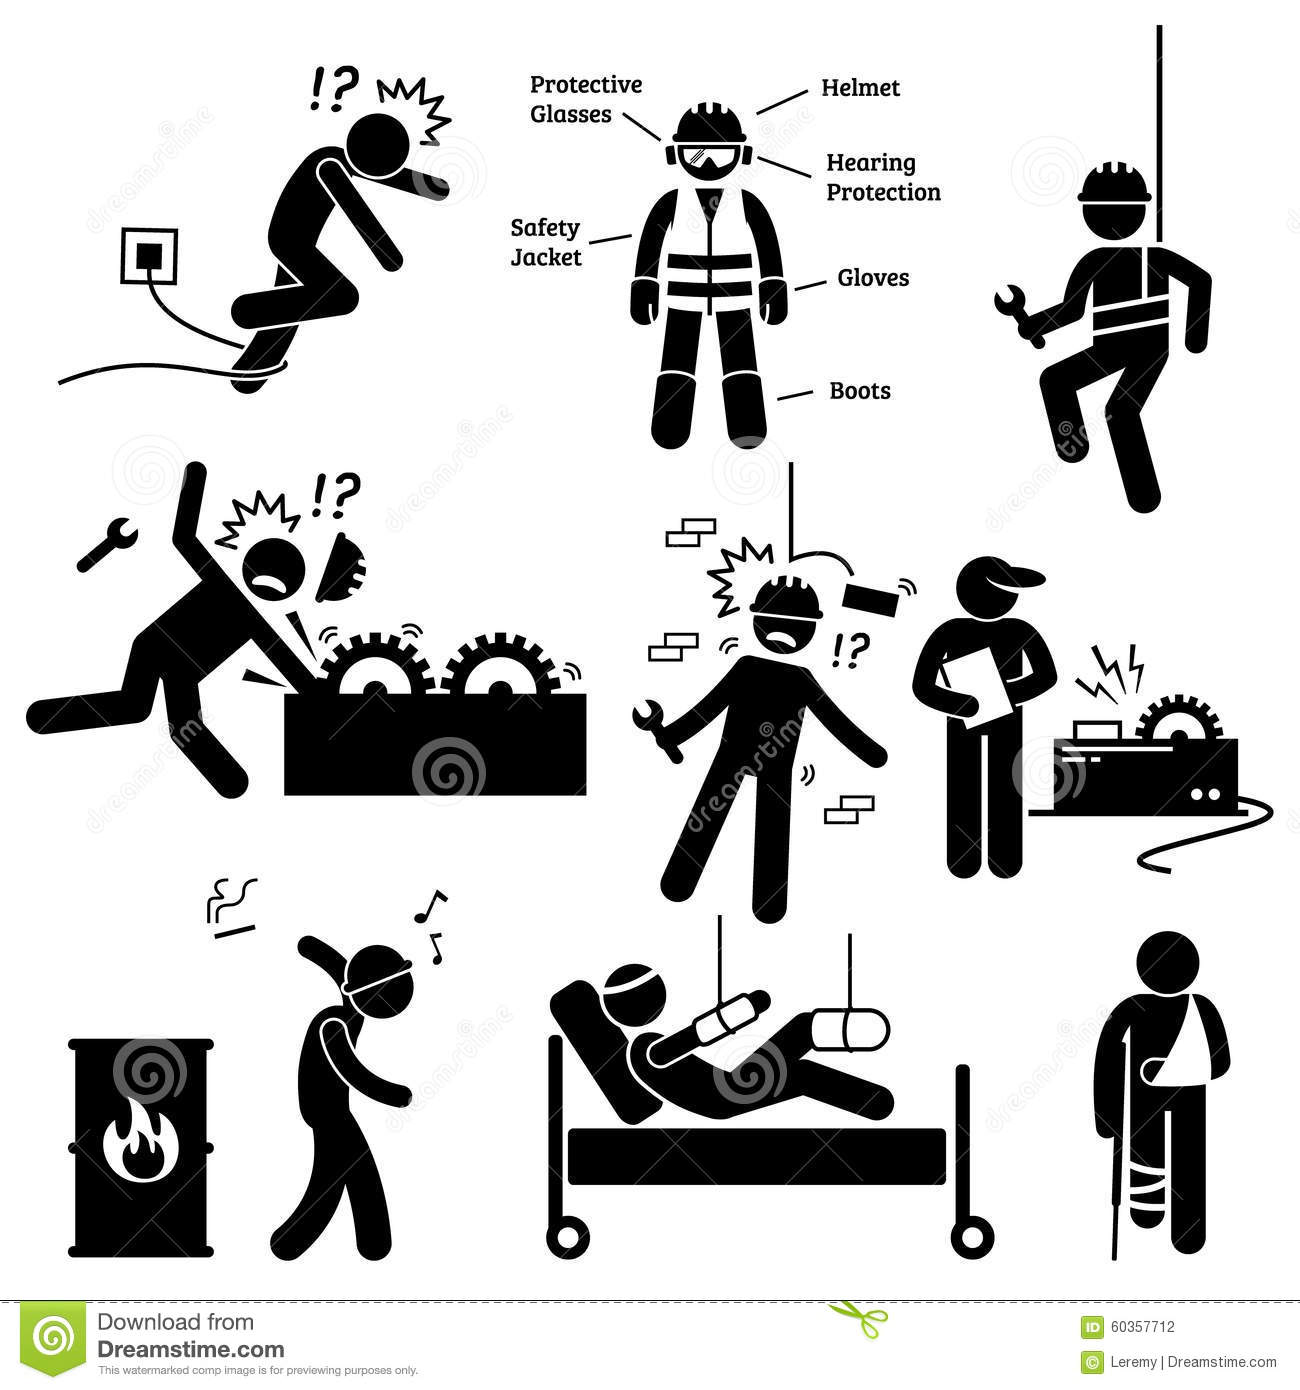 Pictogramme Clipart De Risque D'accident De Professionnel De La.